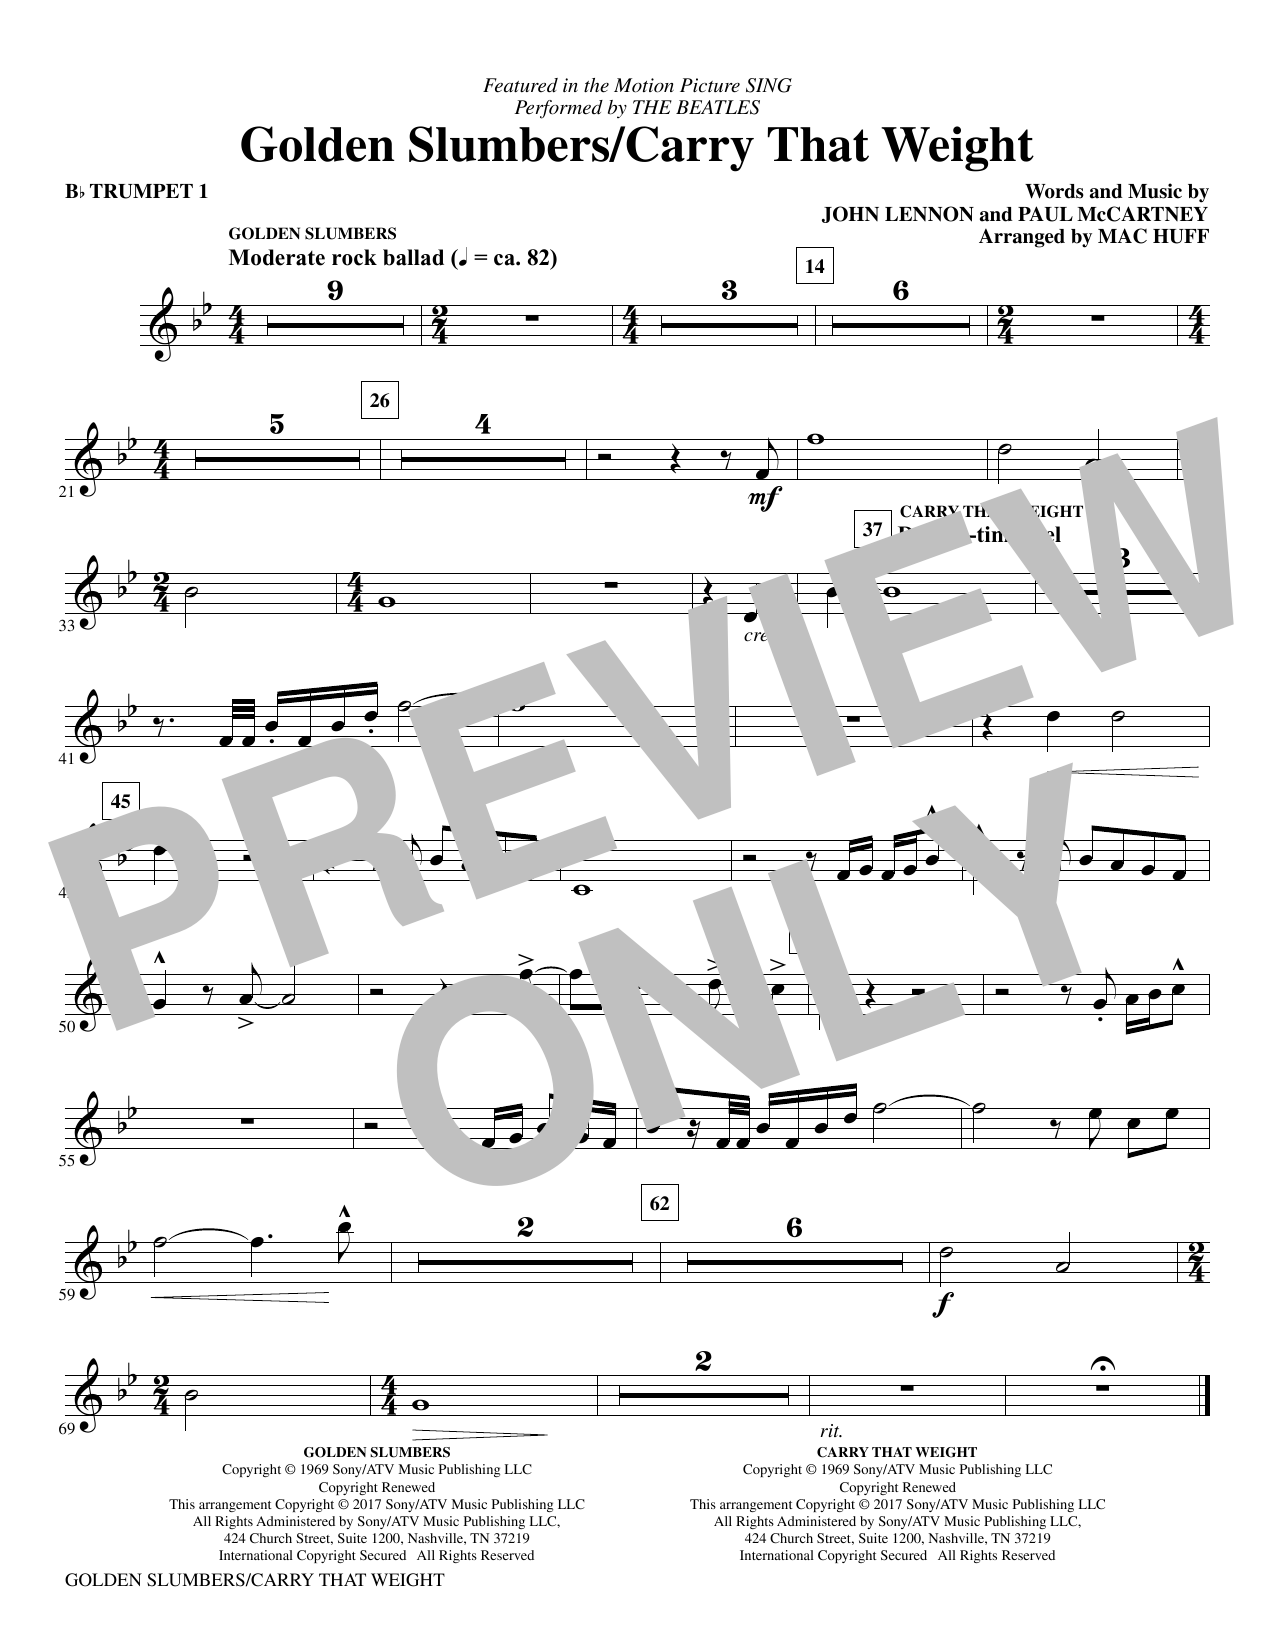 Golden Slumbers/Carry That Weight (from Sing) (arr. Mac Huff) - Bb Trumpet 1 Partituras Digitales